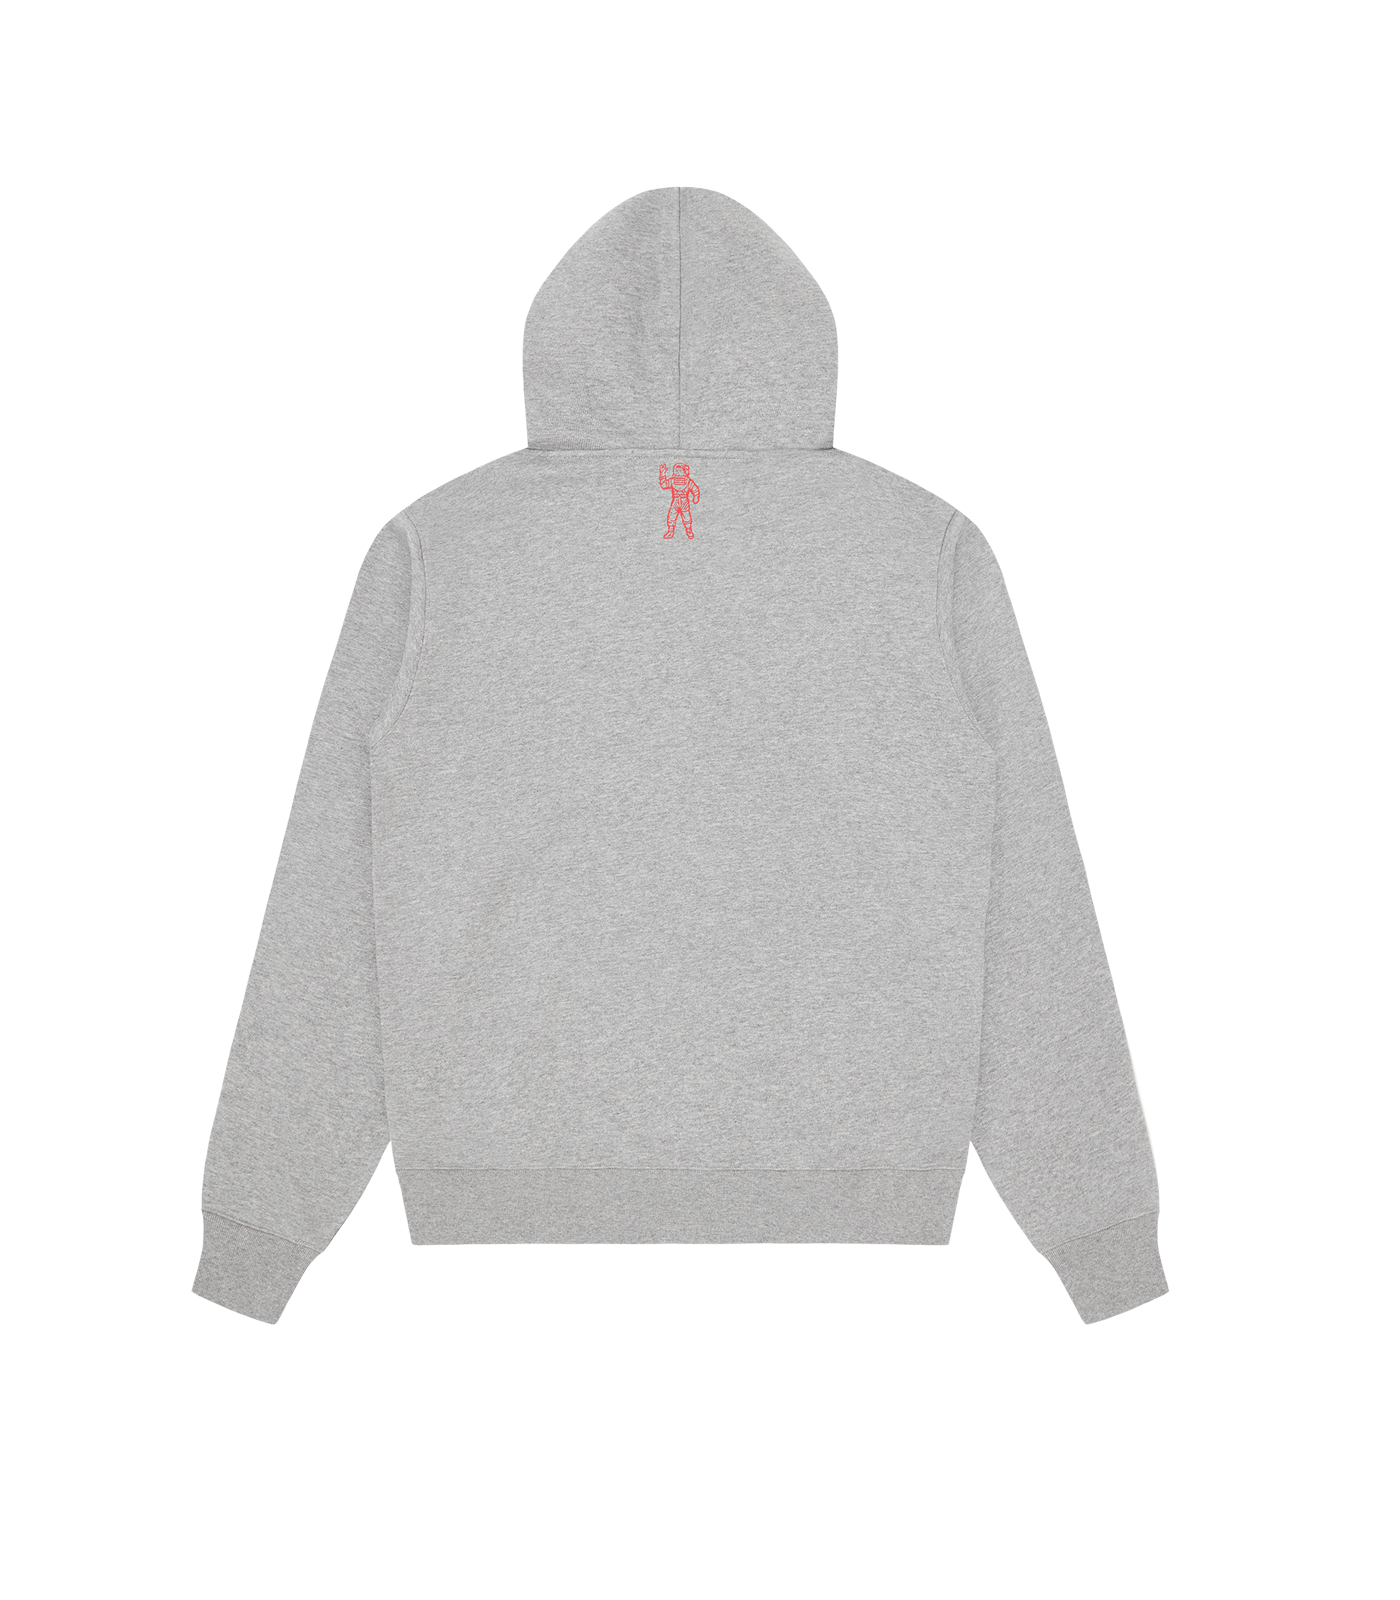 HEART & MIND FELT PATCH POPOVER HOOD - GREY